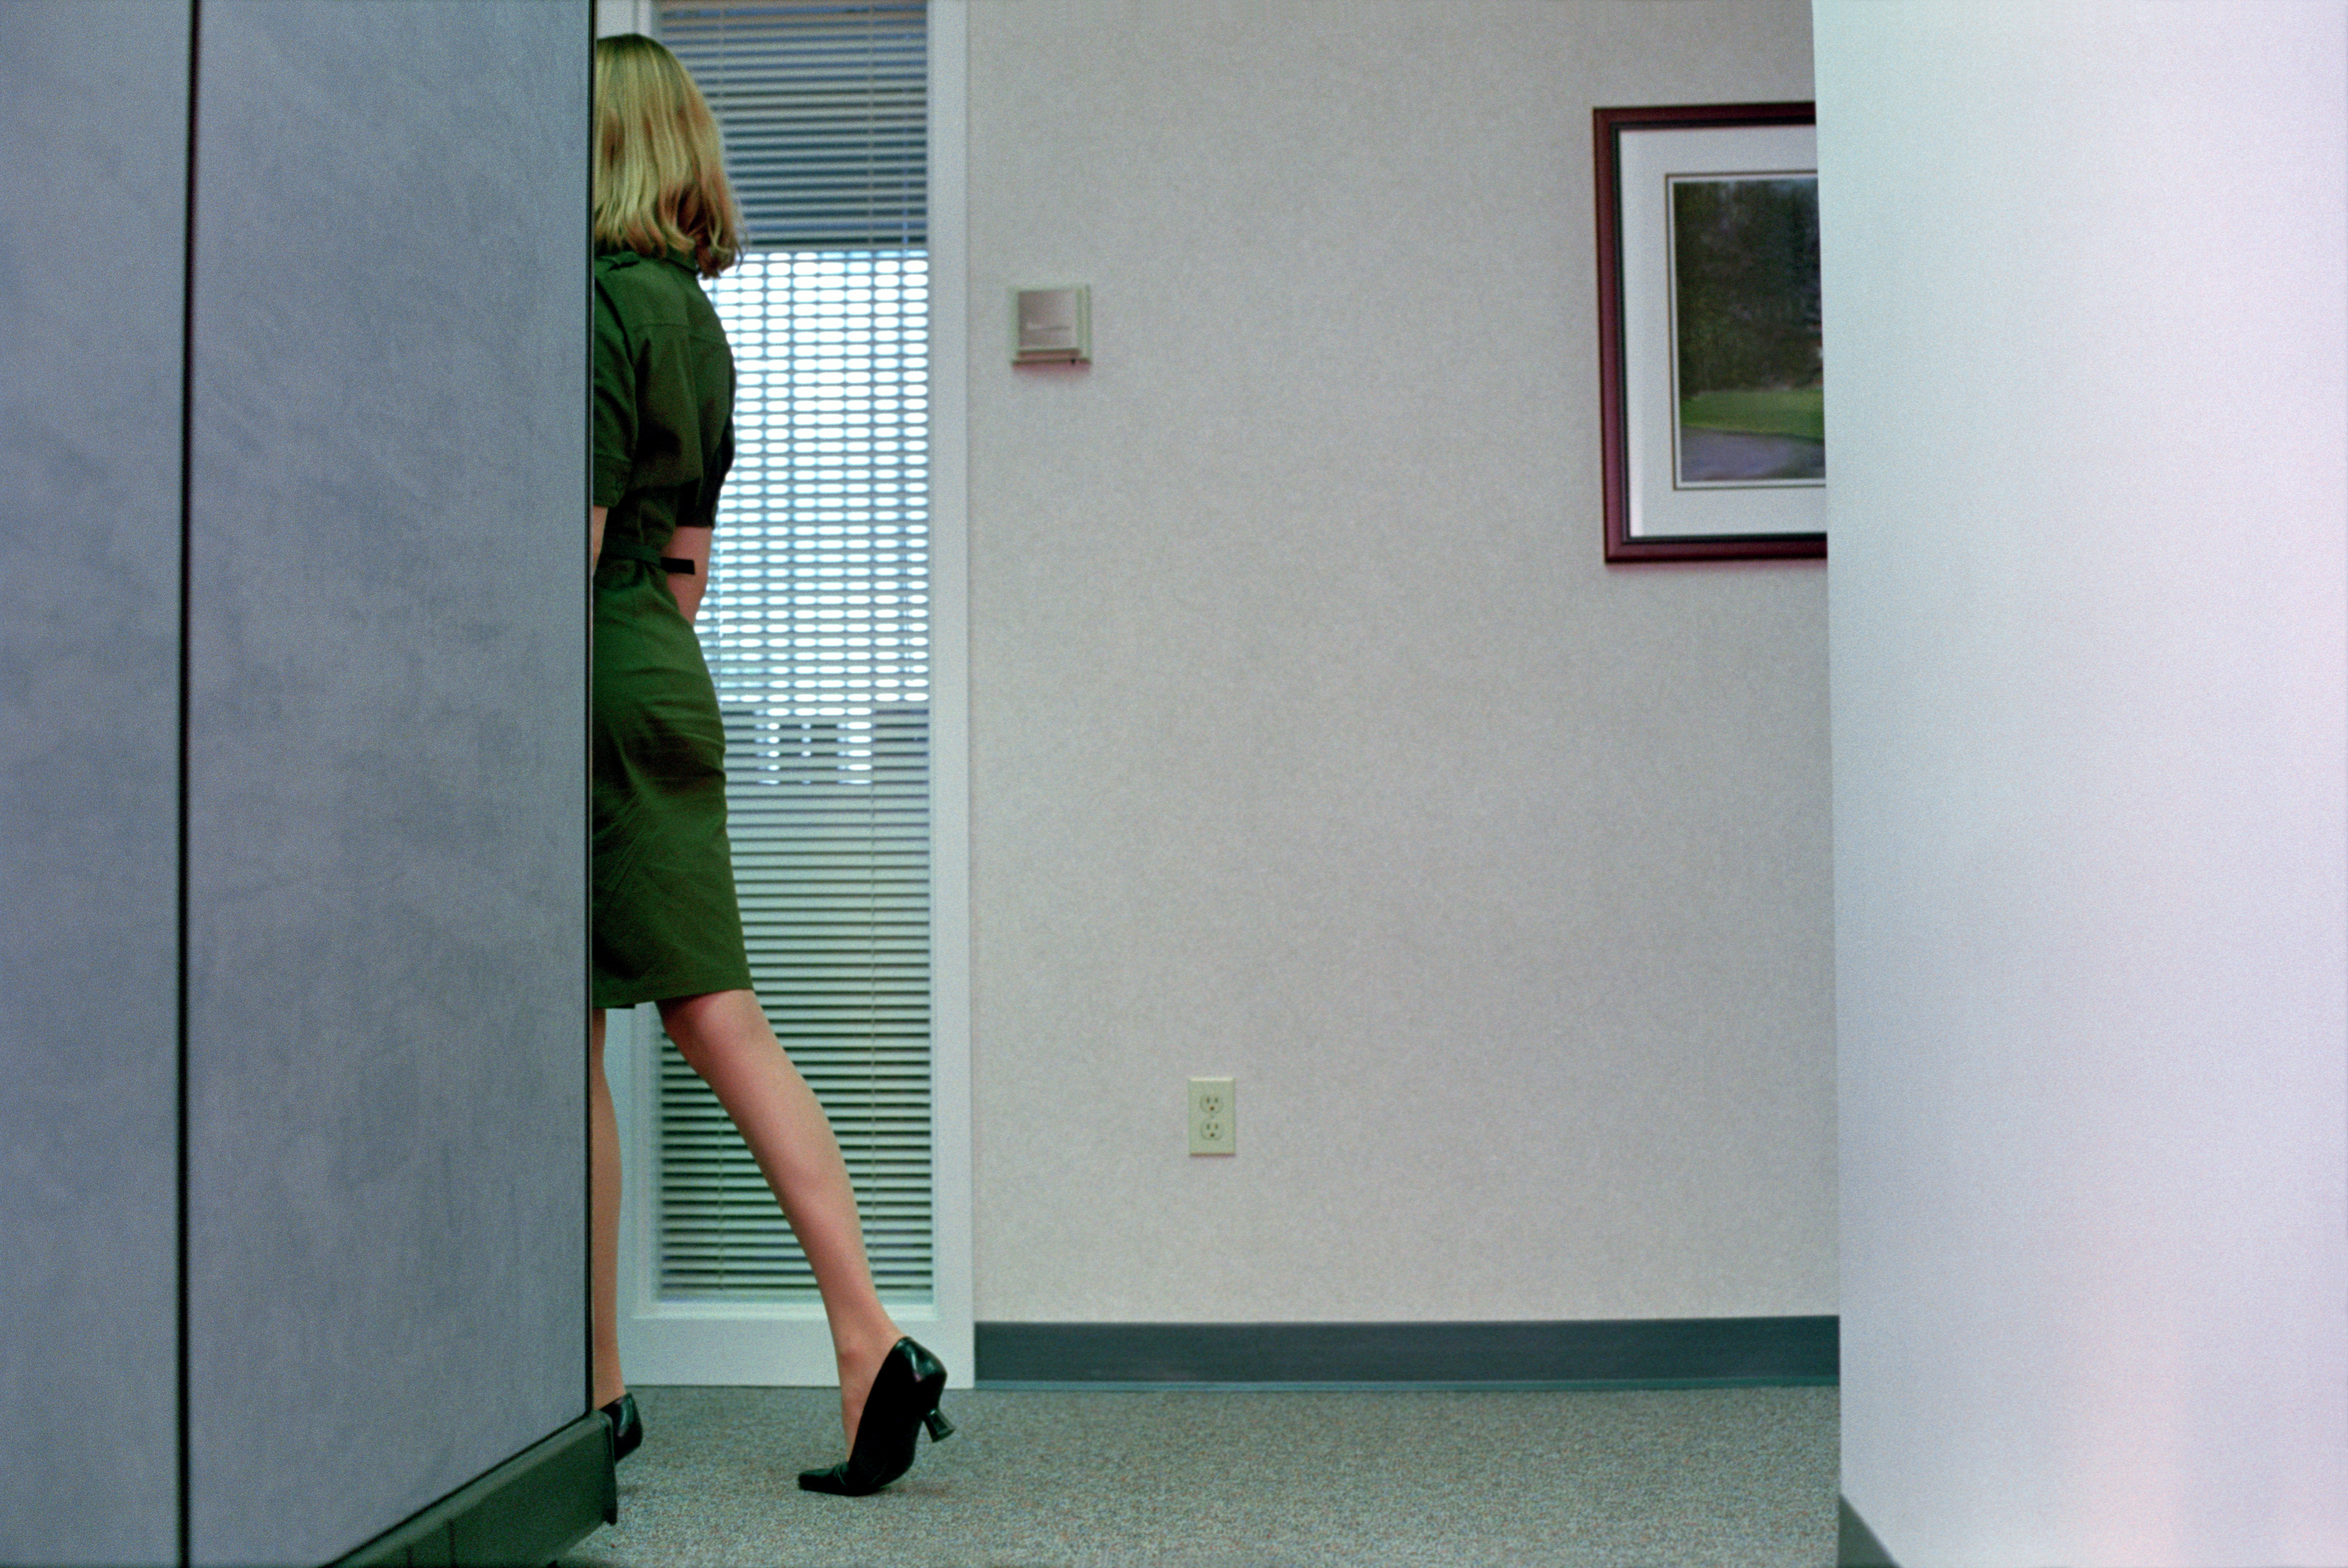 Female office worker turning corner in corridor, rear view